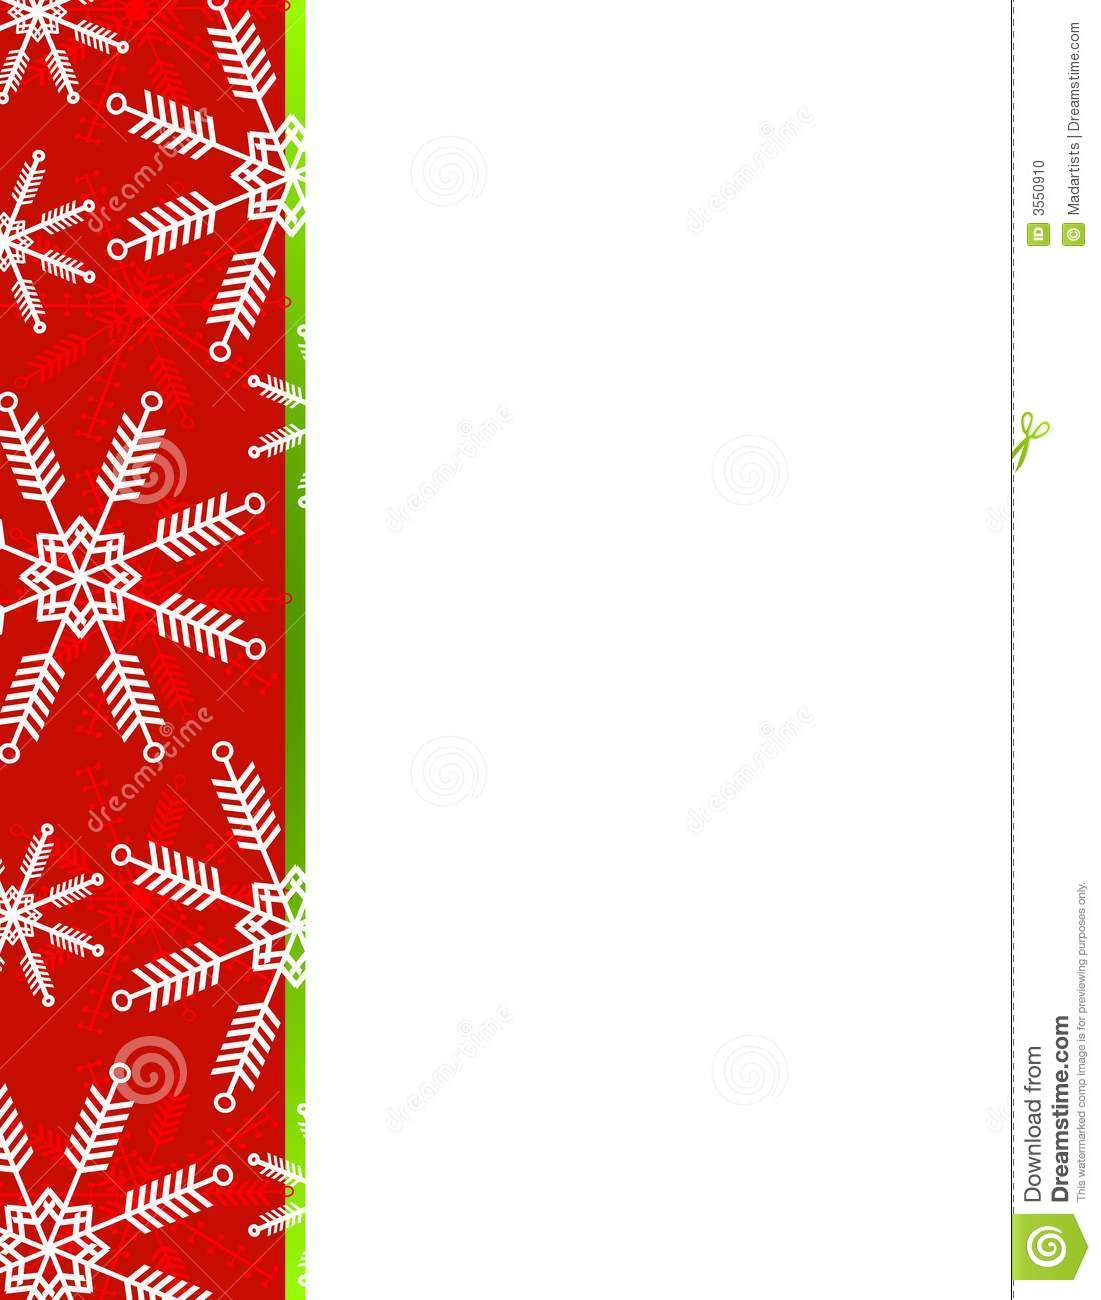 Christmas Borders Clipart.Snowflakes Christmas Border Clipart Panda Free Clipart